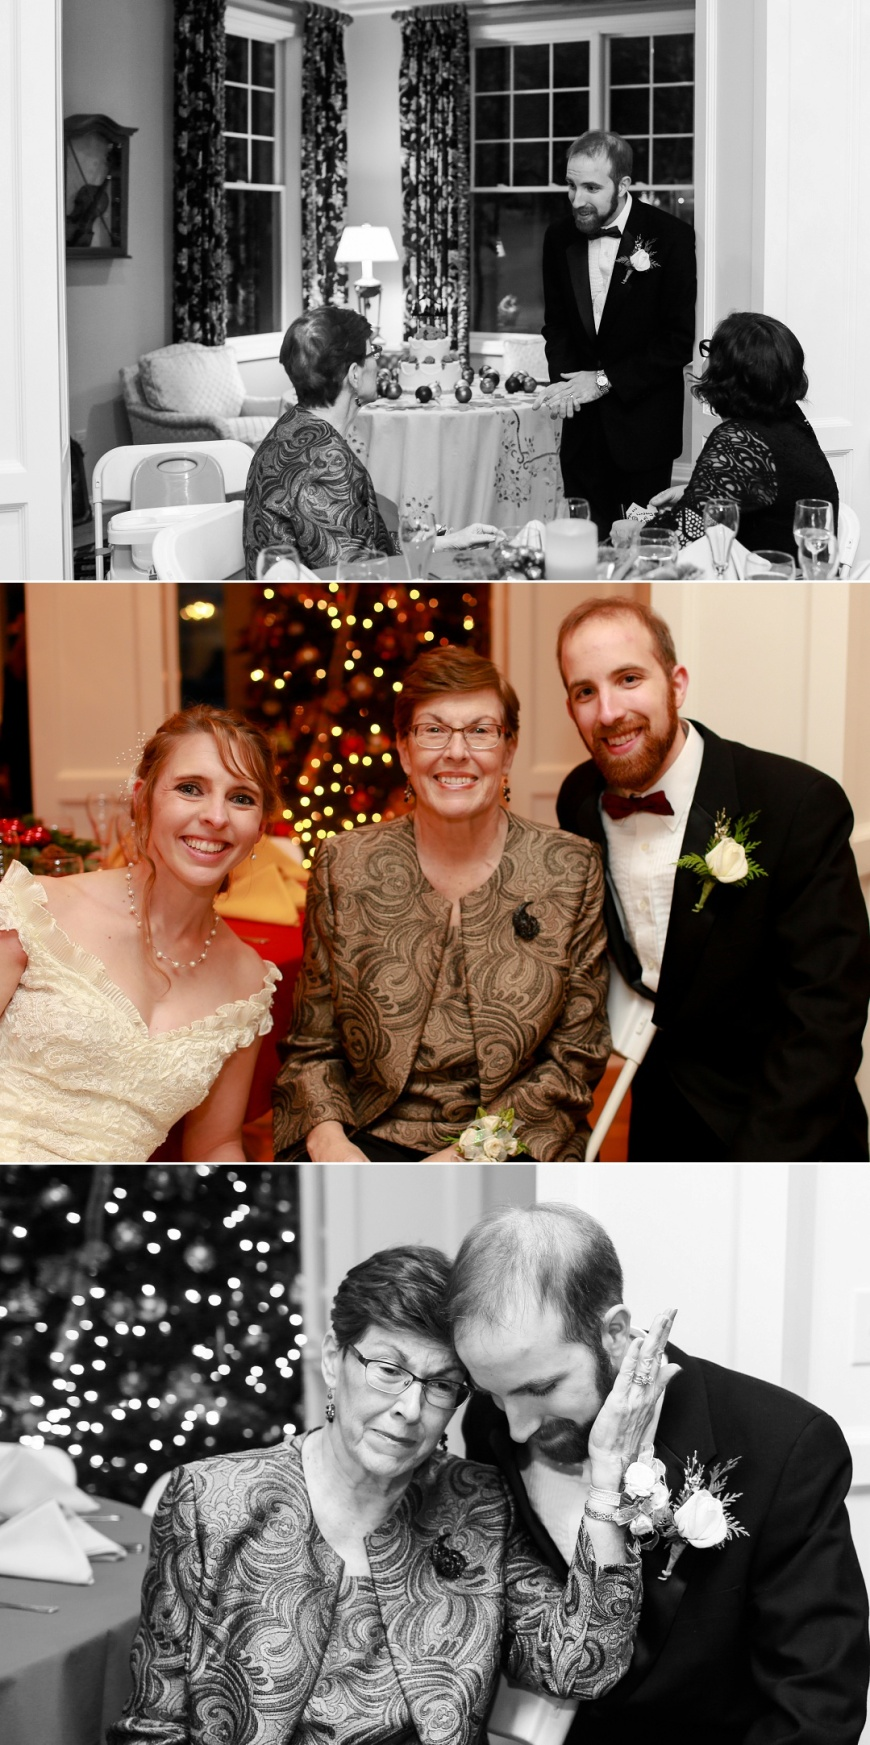 Kalamazoo-Winter-Wedding-Photographer_1062.jpg